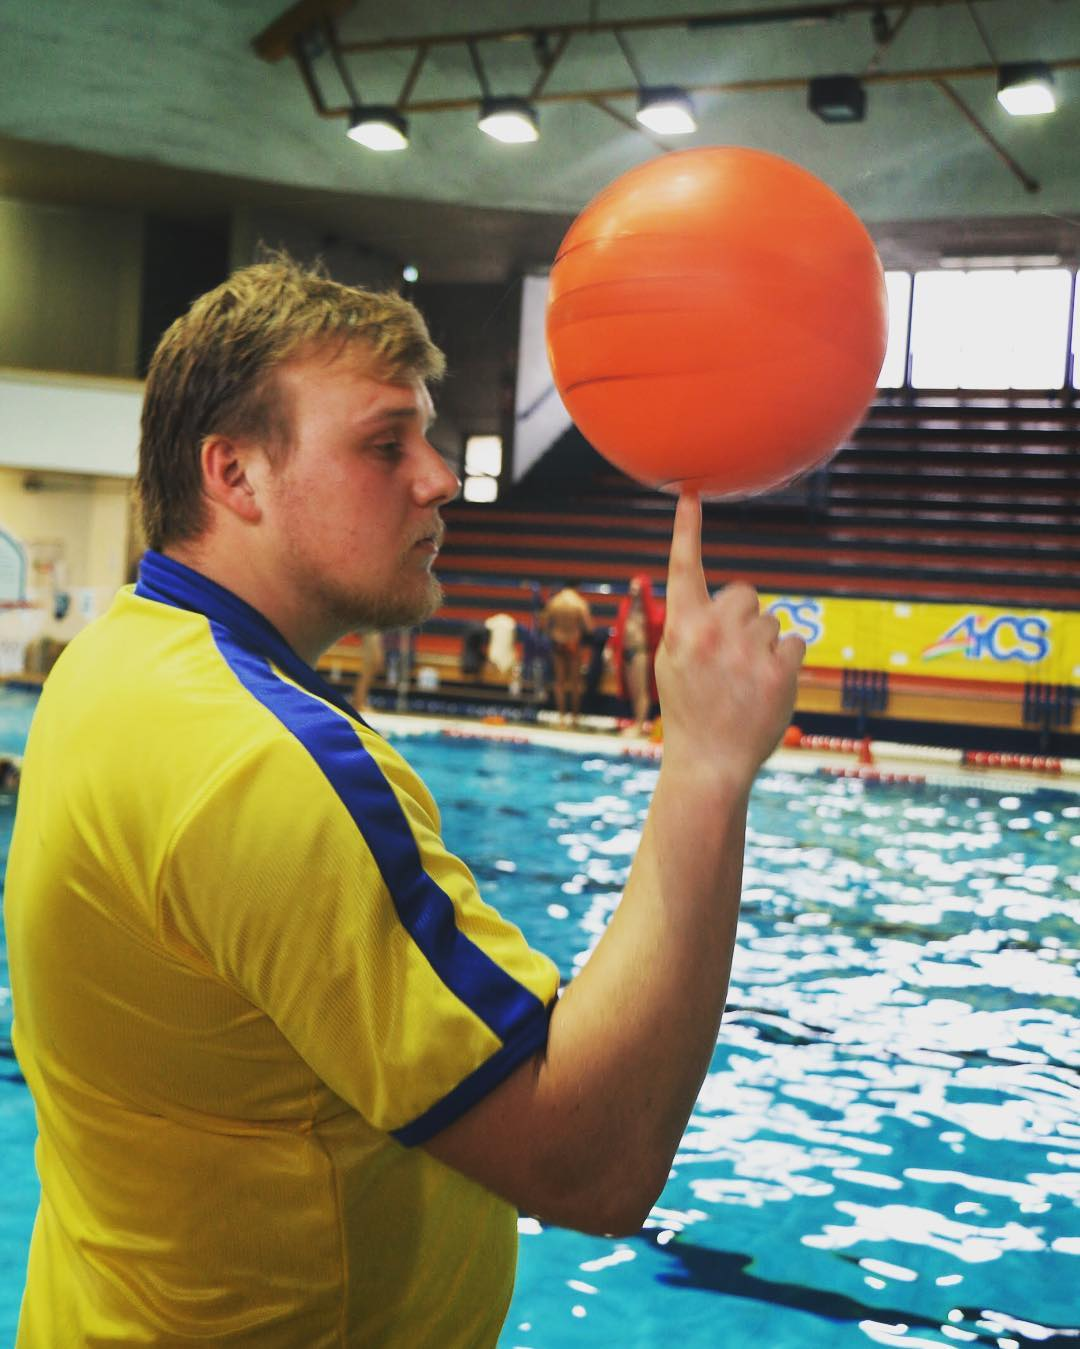 The-referee0Awaterbasketball-waterbasket-waterpolo-referee-sport-photooftheday-instalike-instacool-instagood-follow-nba-basketball-basket-water-ball-whistler-swimmingpool-pool